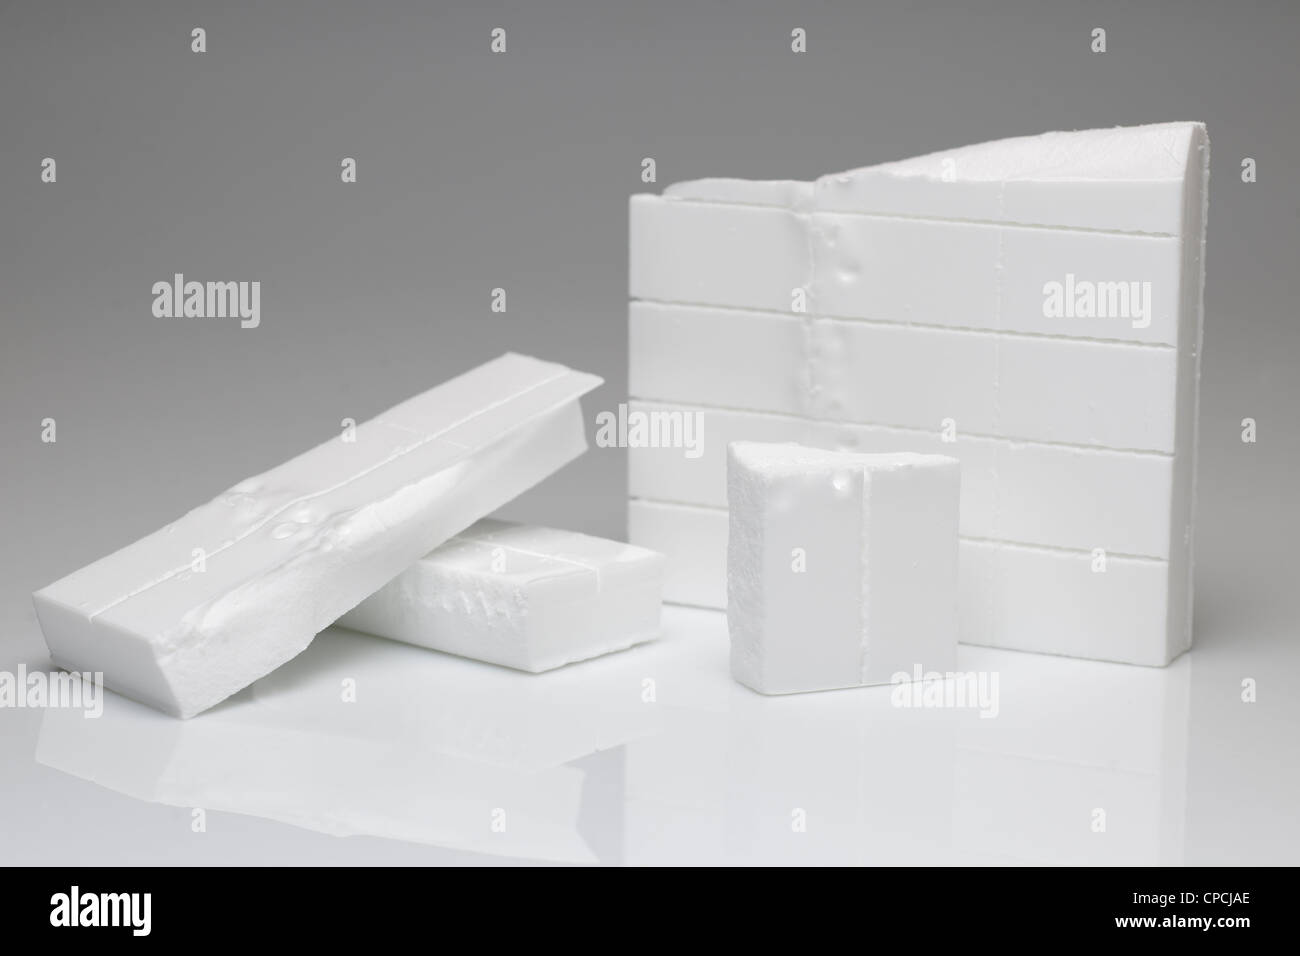 Broken fire lighter blocks for Barbecues and fire lighting - Stock Image